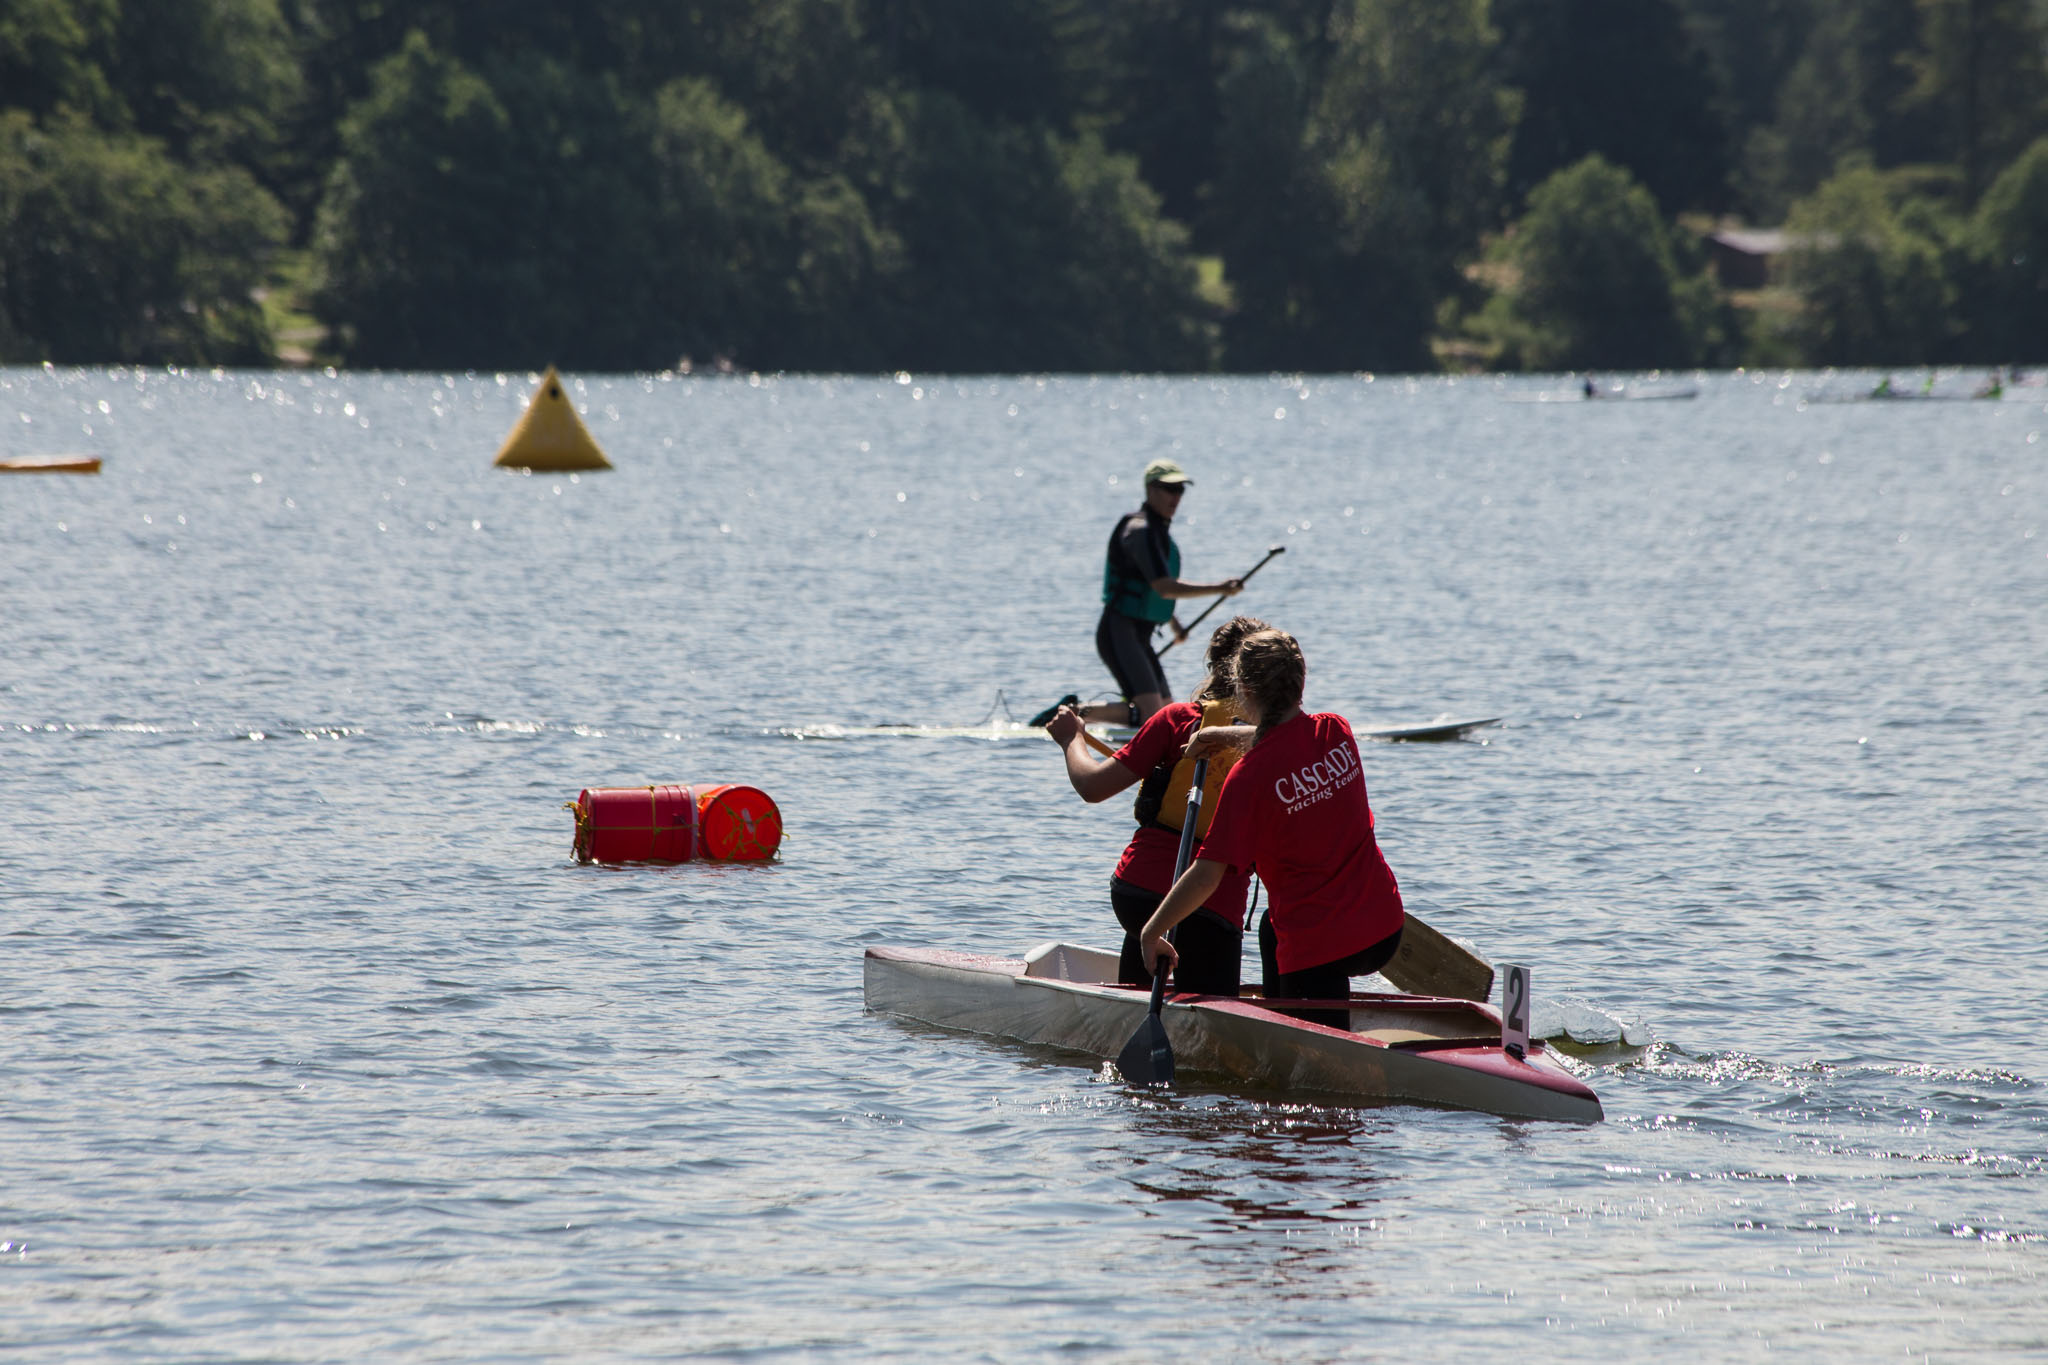 Kids C2 canoe race